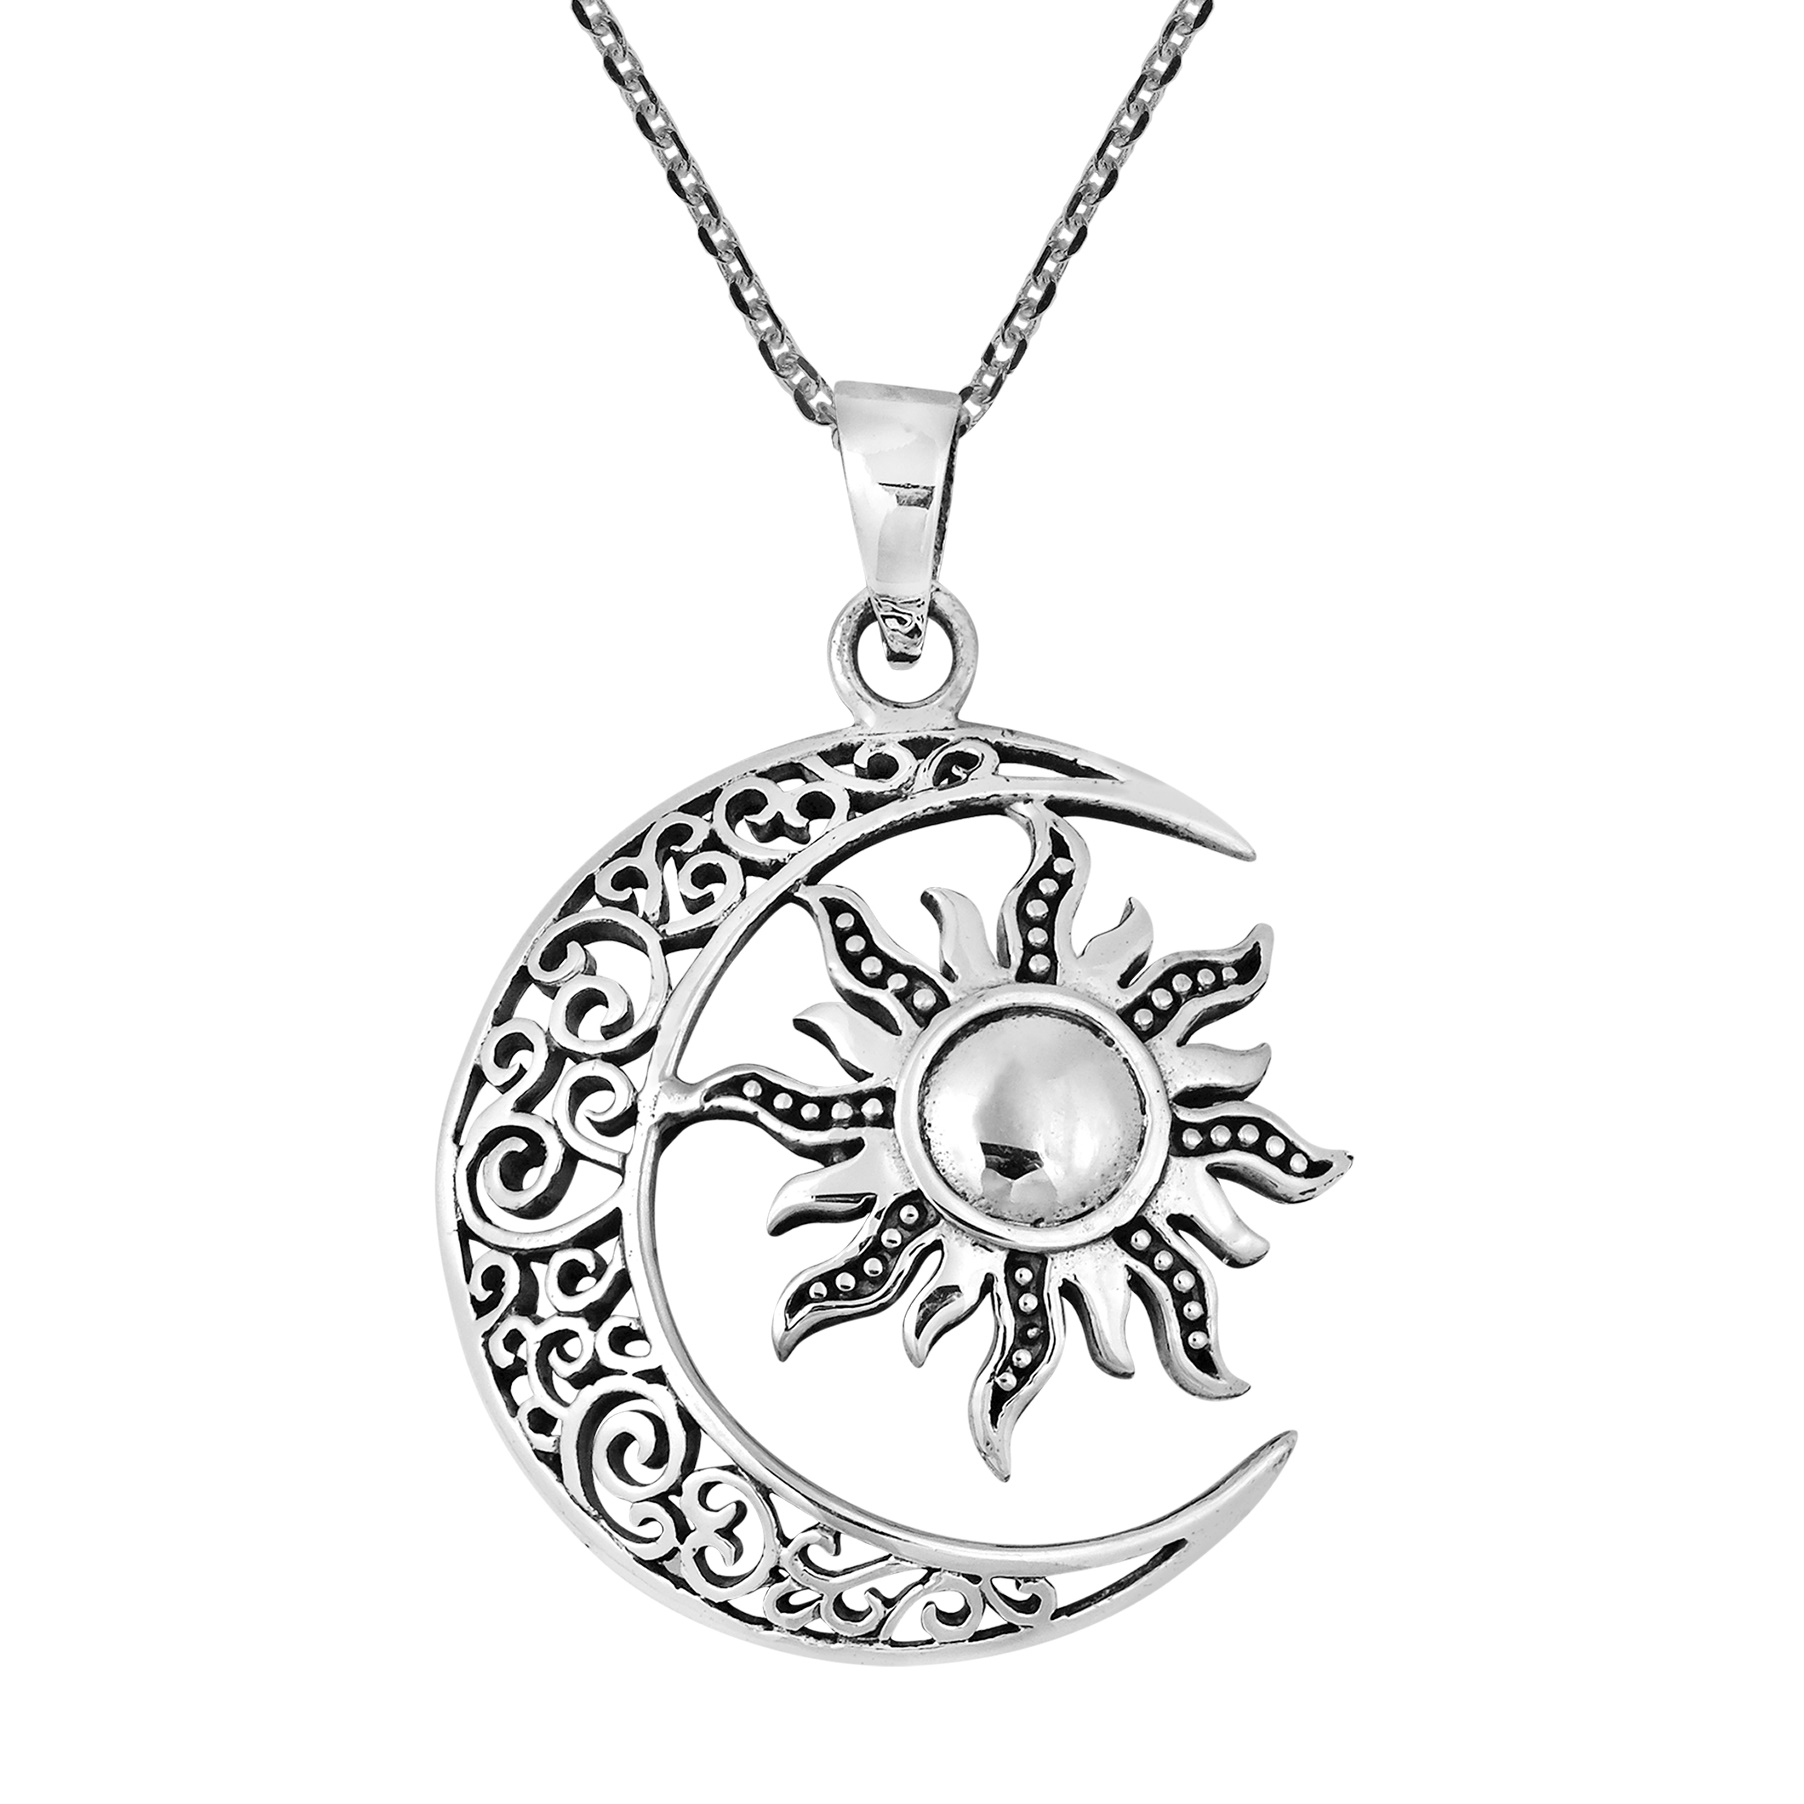 1804x1804 Celtic Crescent Moon And Sun Eclipse Sterling Silver Necklace